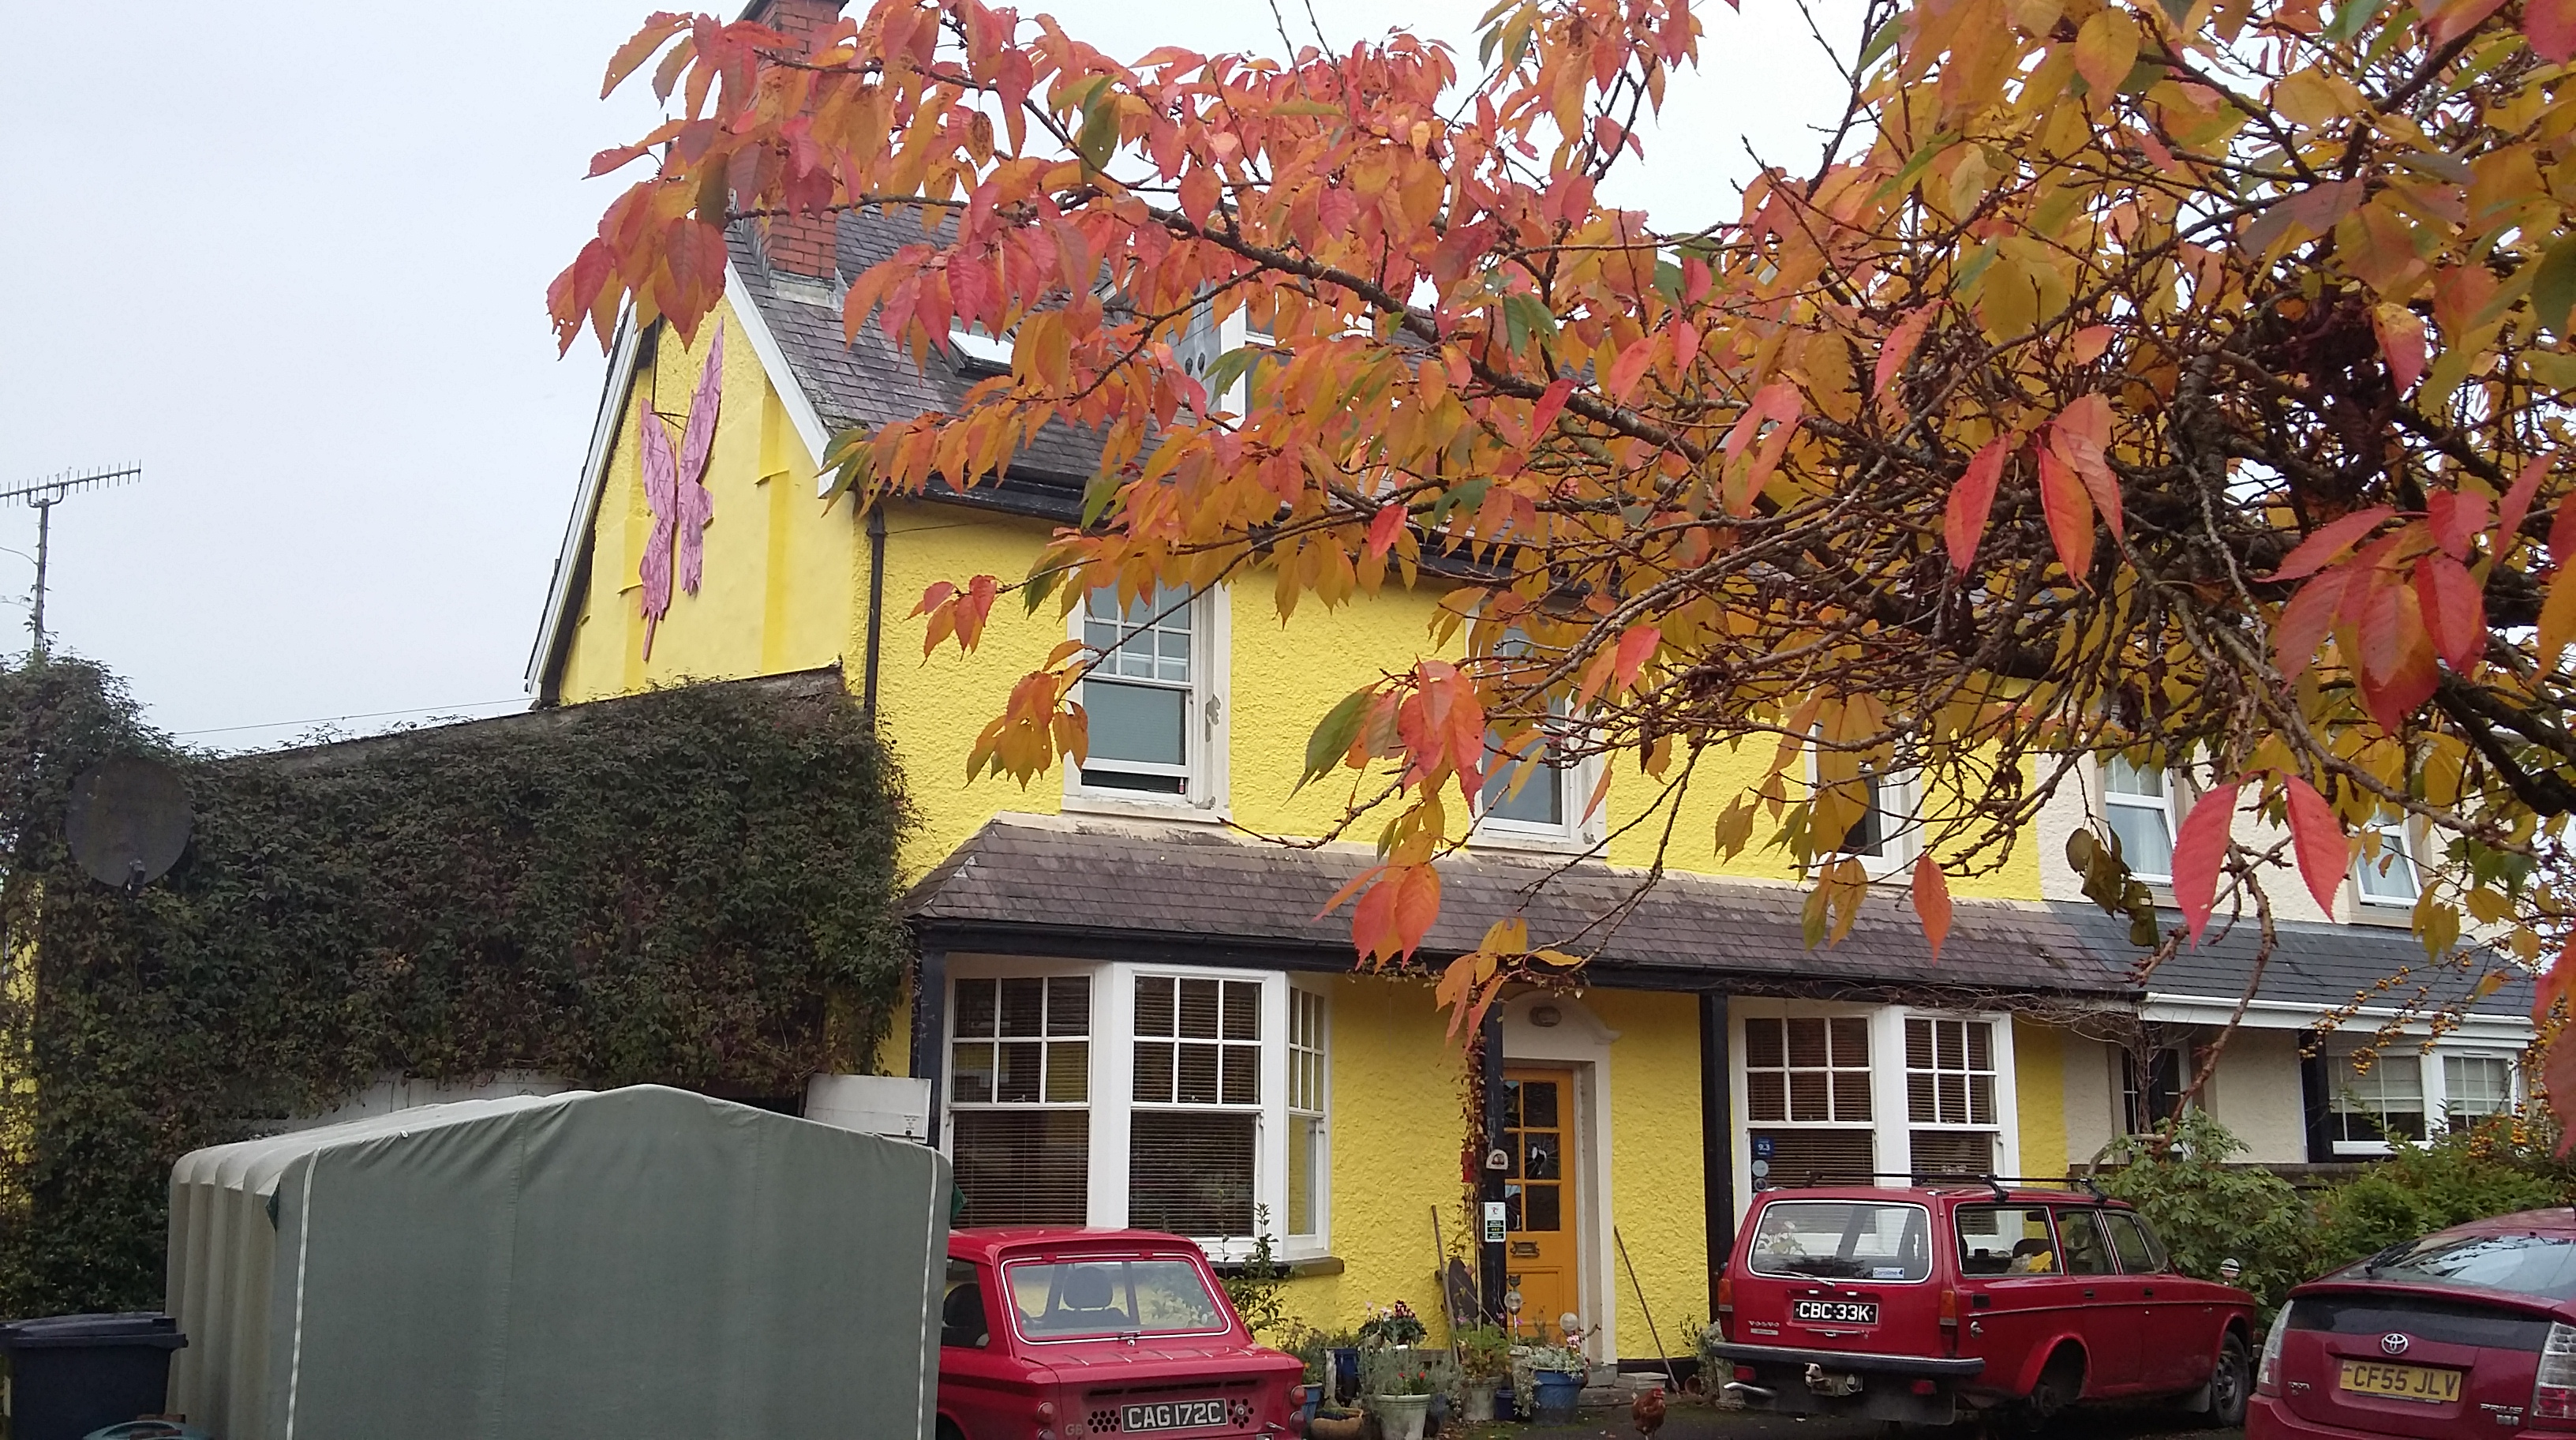 Cerdyn Villa Guesthouse, BnB, Bed and Breakfast, Llanwrtyd Wells, Powys, Wales, accommodation